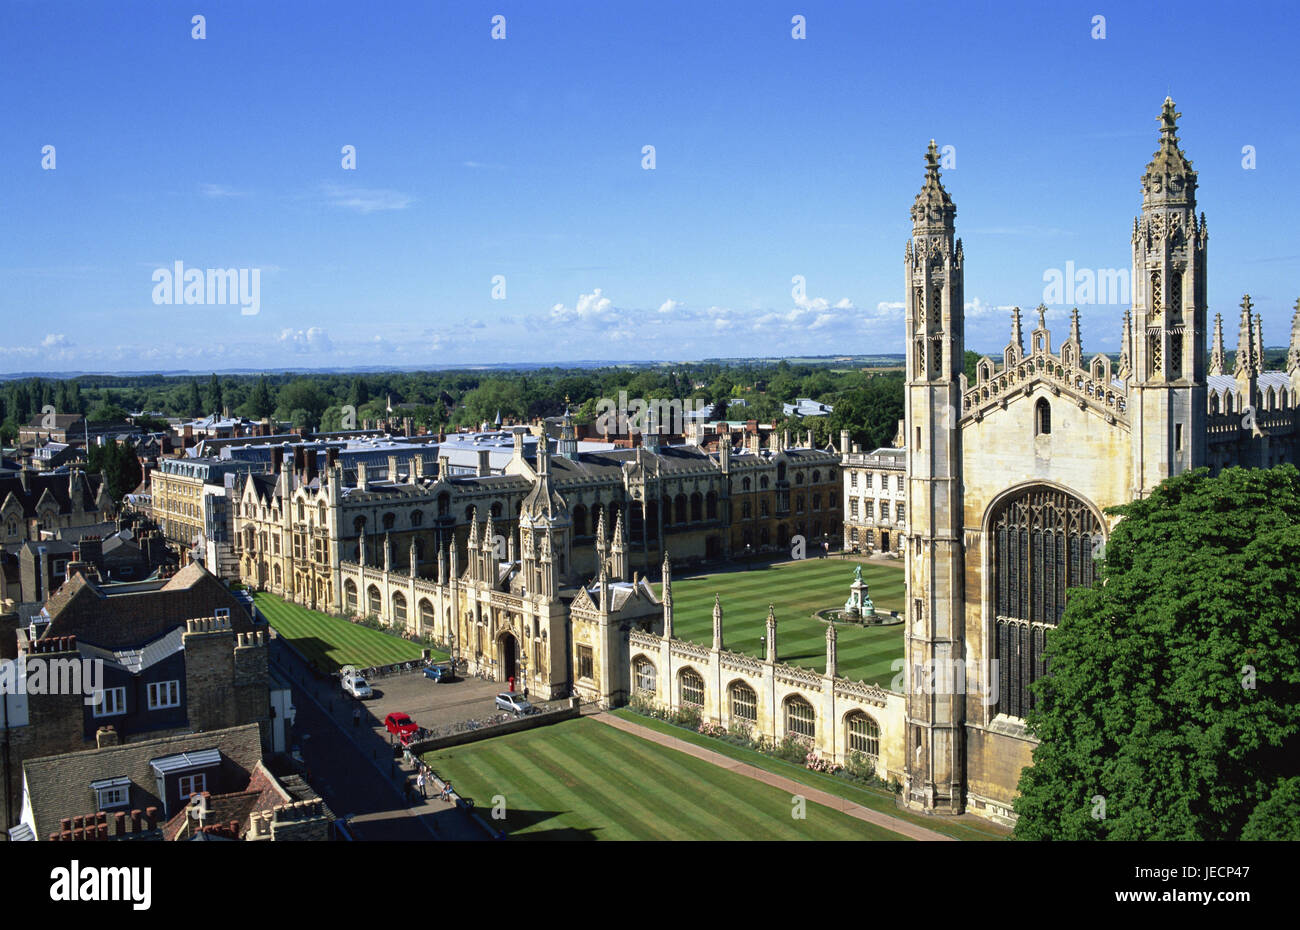 Great Britain, England, Cambridgeshire, Cambridge, town view, King's college, Europe, town, destination, place - Stock Image